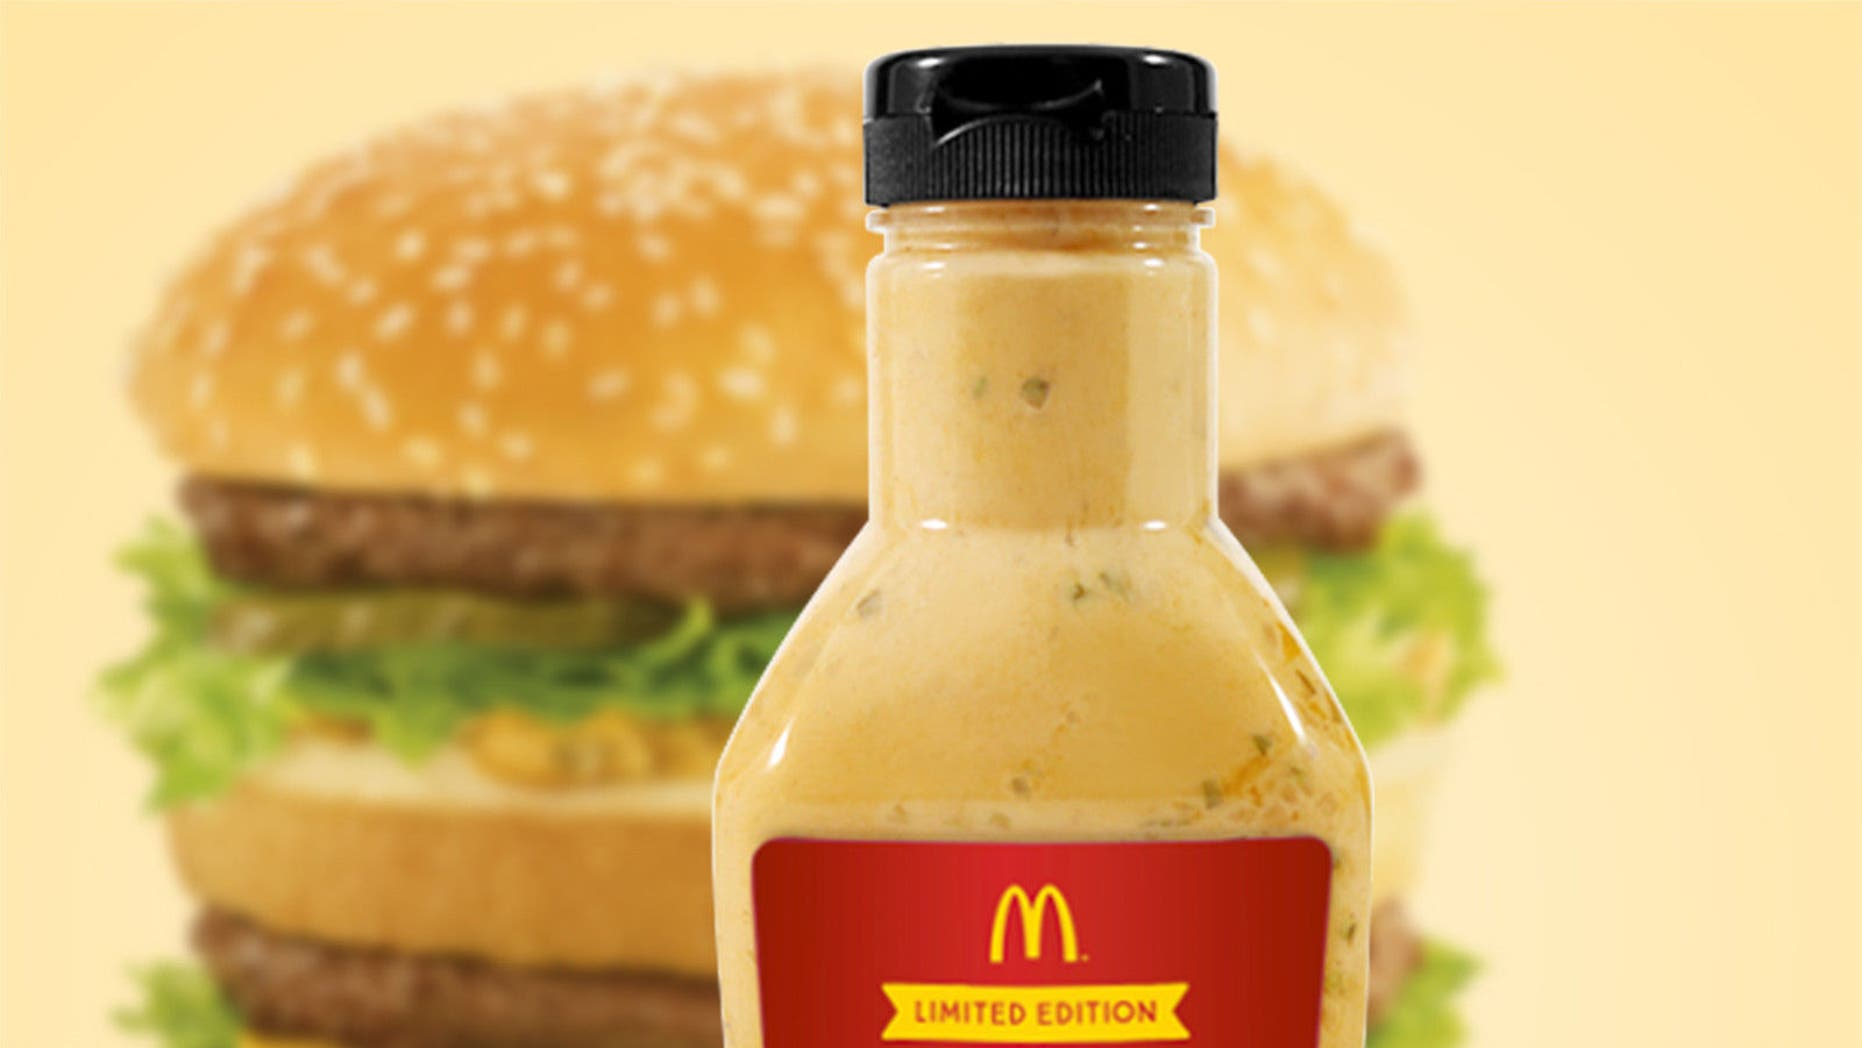 That special sauce is worth more than gold to some McDonald's fans.